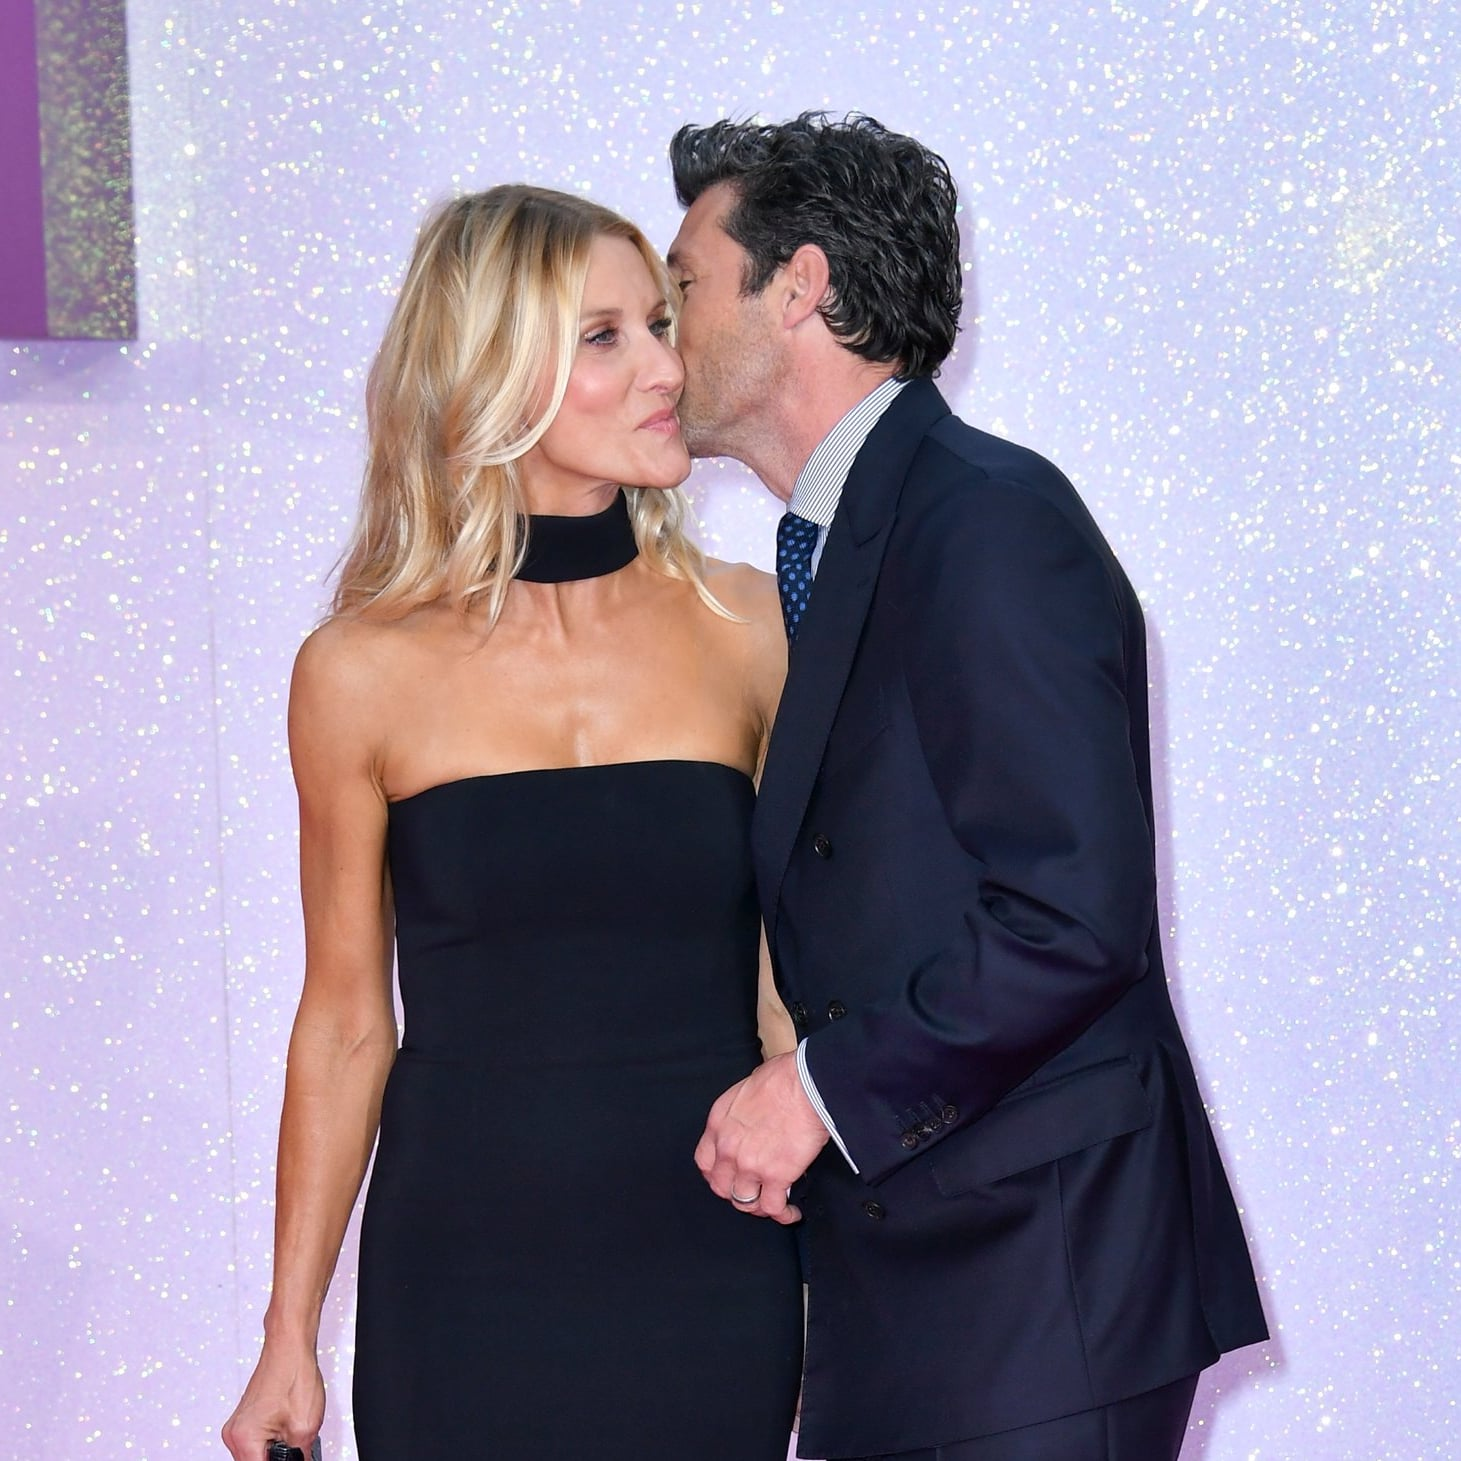 Patrick Dempsey And Family At Bridget Joness Baby Premiere